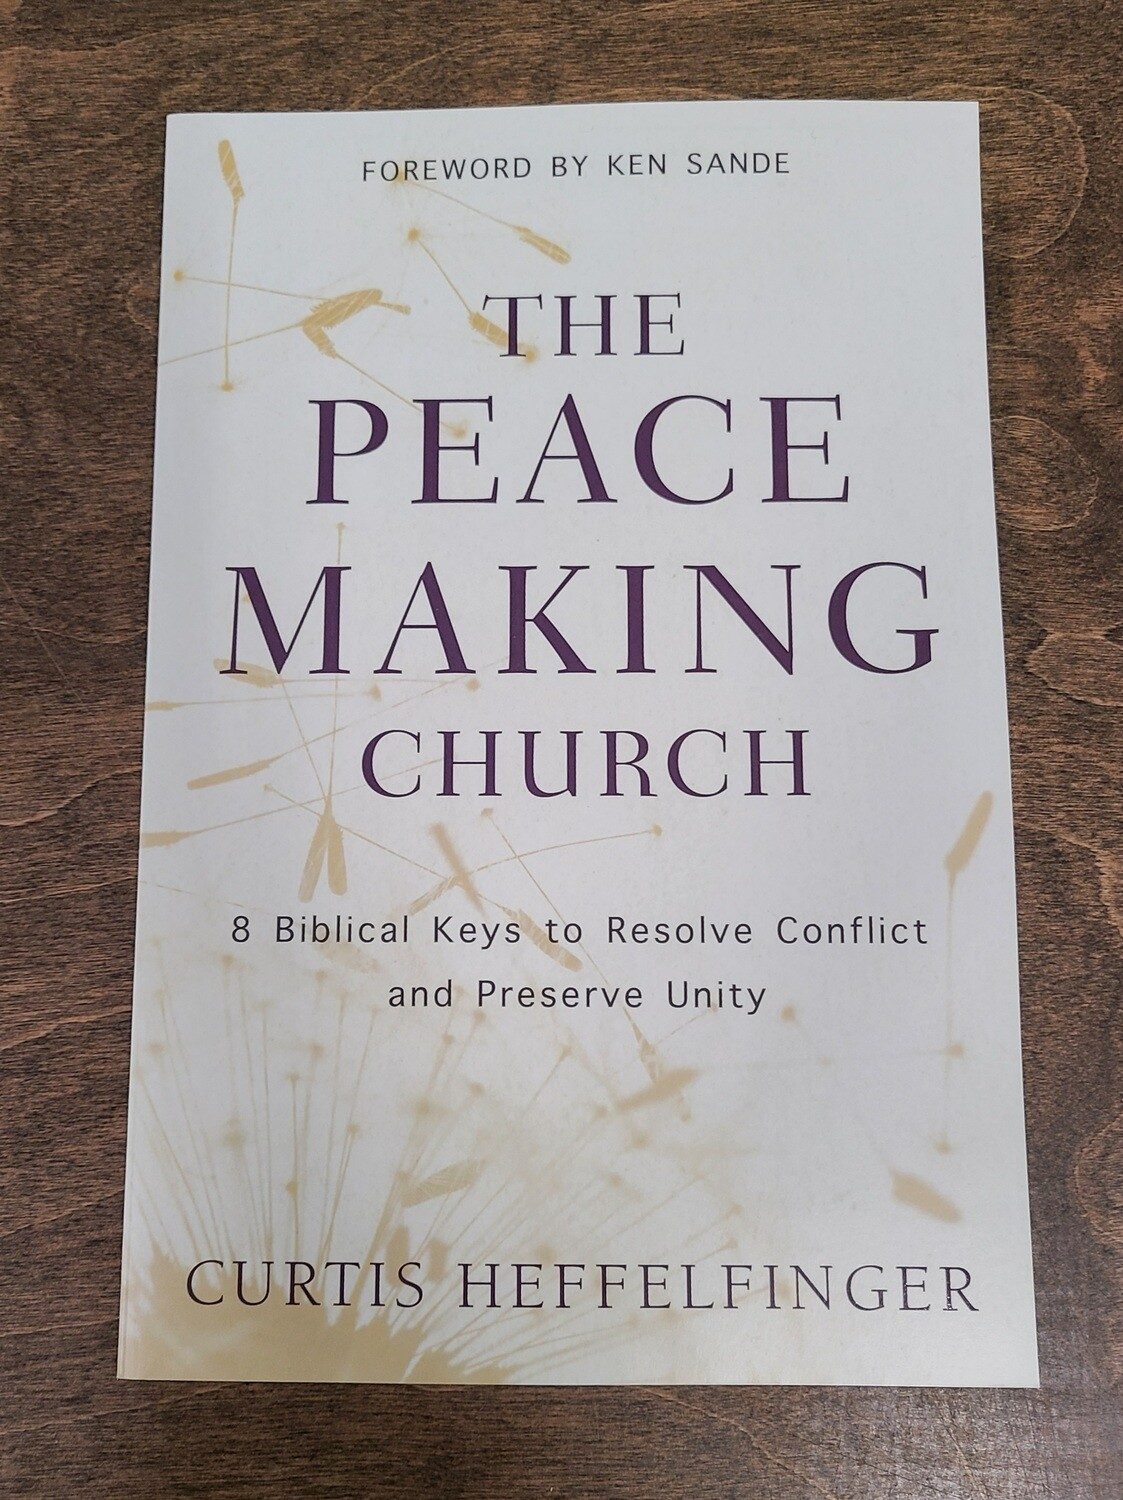 The Peacemaking Church: 8 Biblical Keys to Resolve Conflict and Preserve Unity by Curtis Heffelfinger